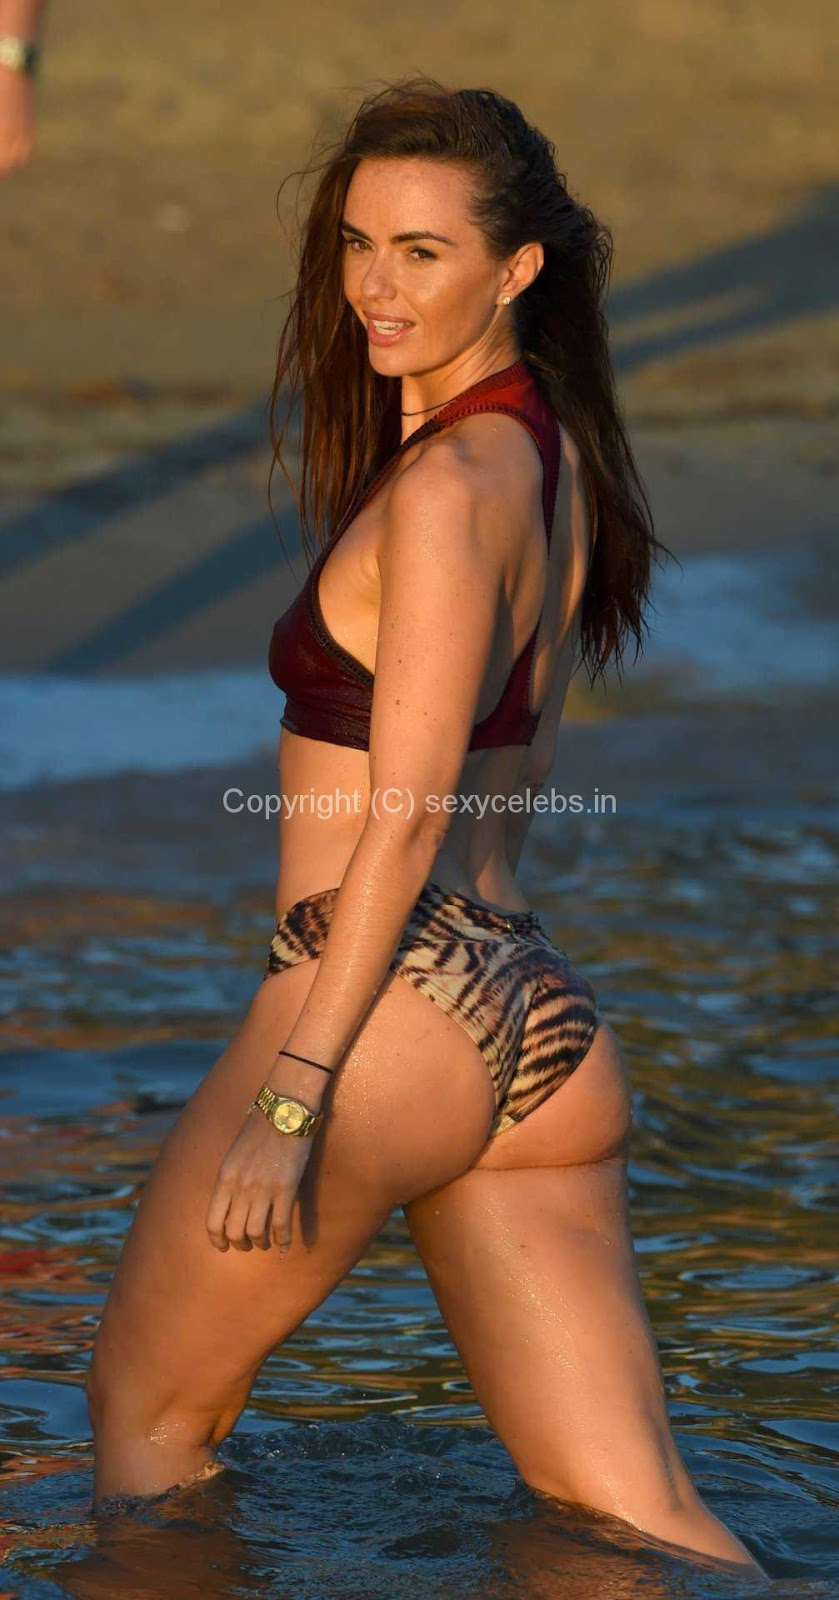 Jennifer Metcalfe in wet Cotton Panties Bikini Sexy Ass Crack Cameltoe WOW amazing Boobs Beautiful Body Having Sex with Husband Amazing Jennifer Metcalfe